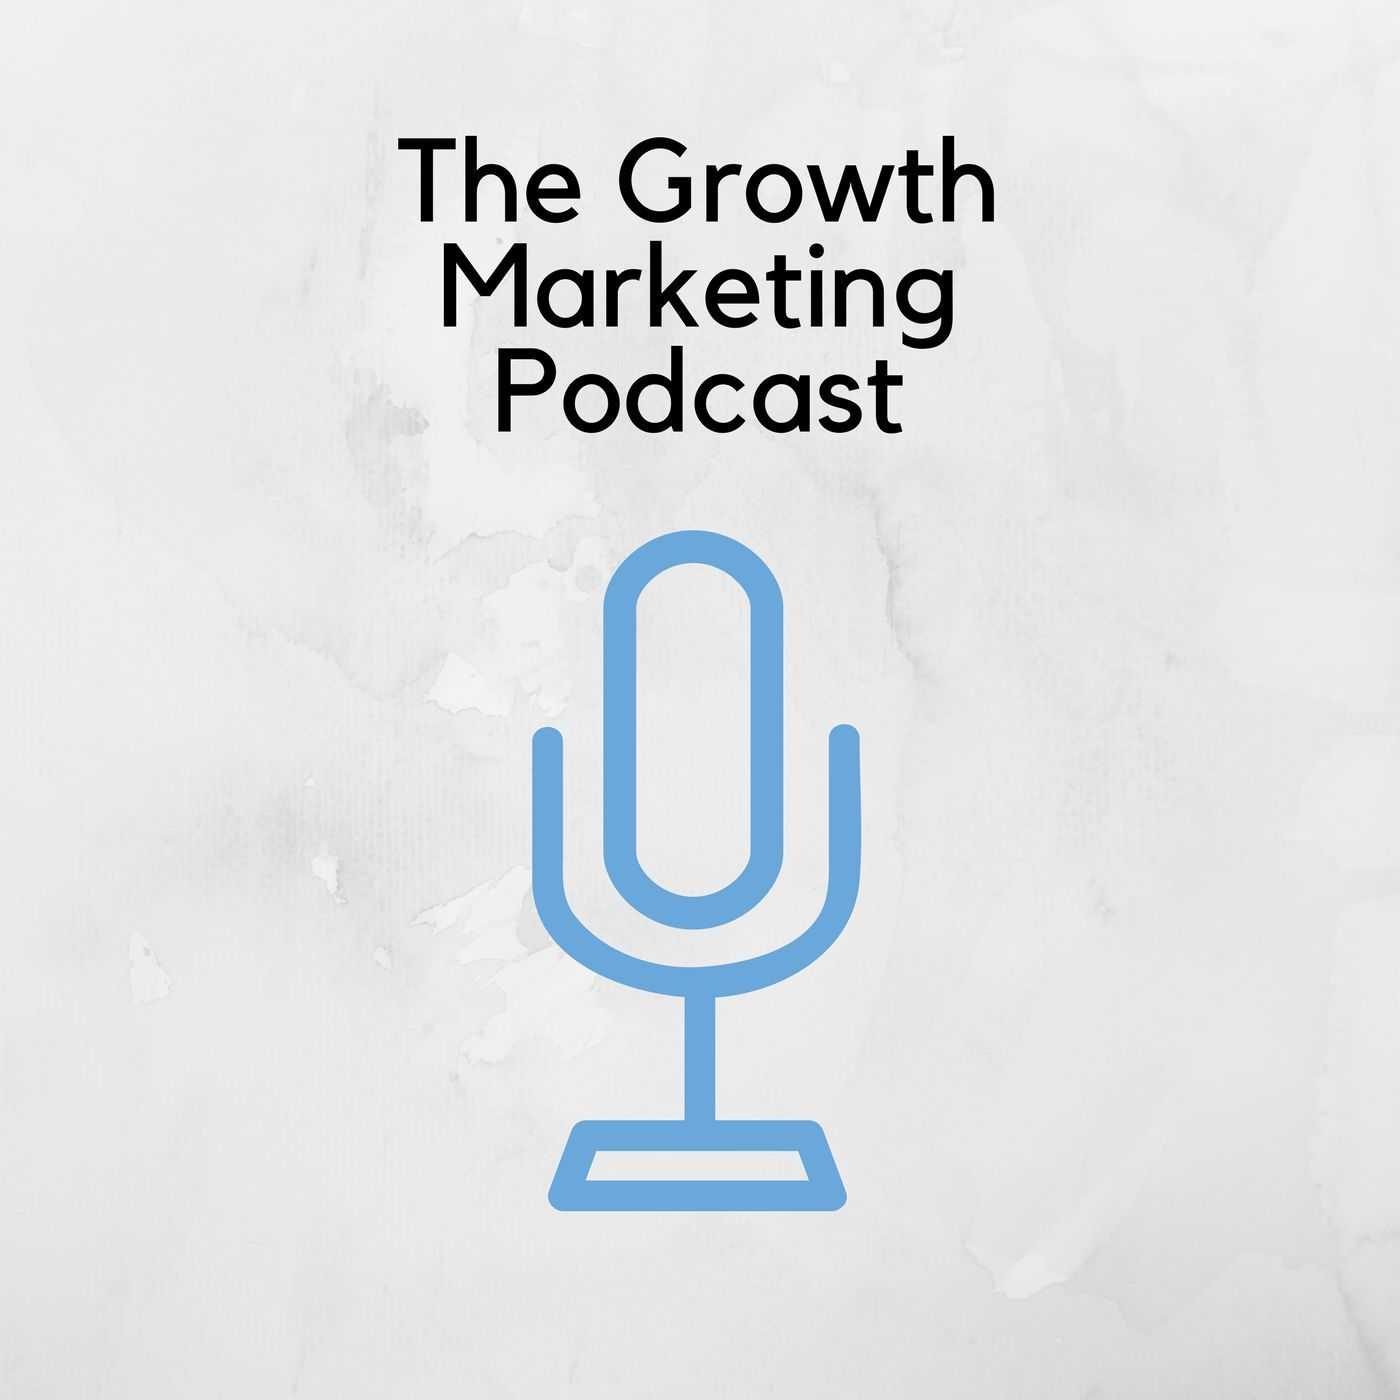 The Growth Marketing Podcast